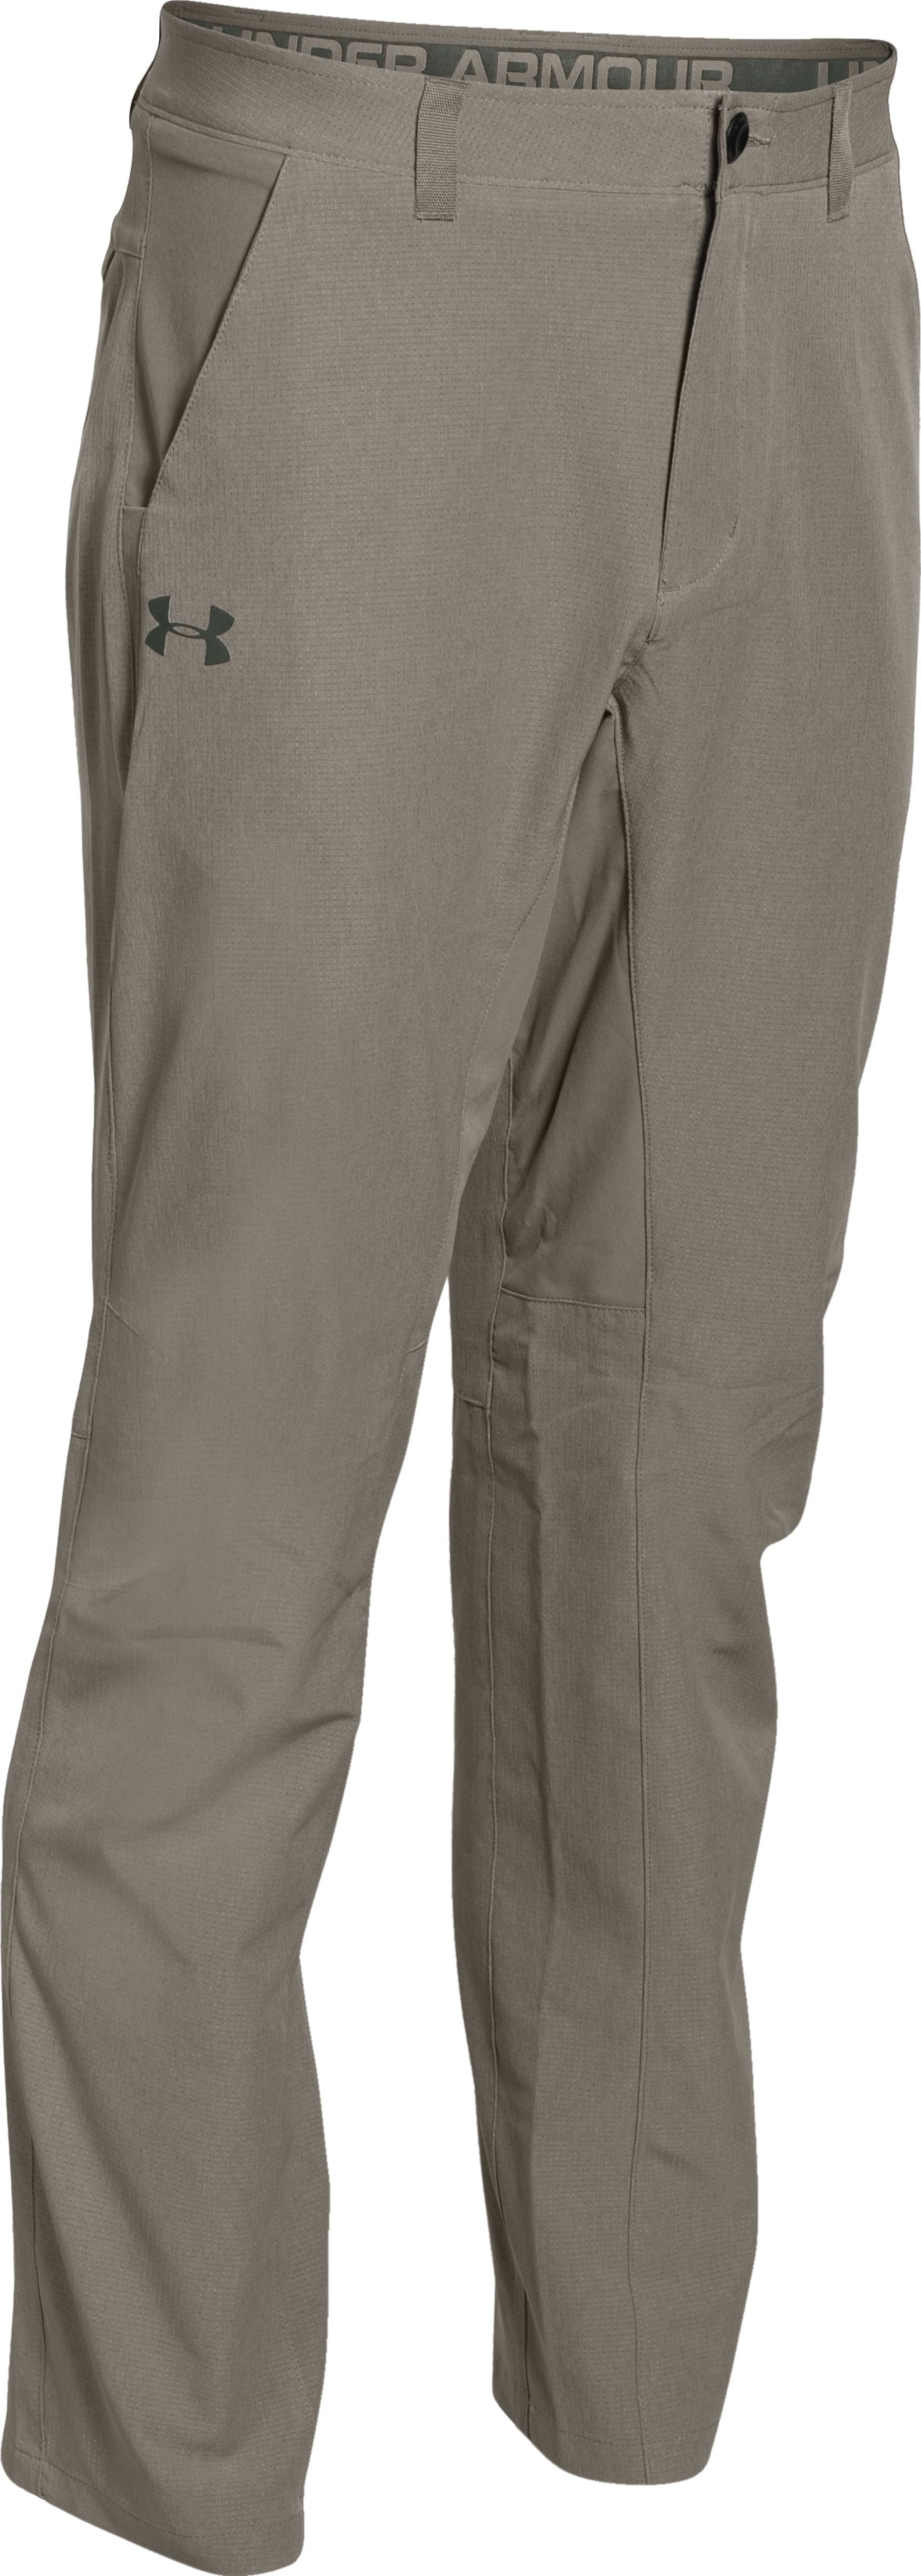 Men's UA ArmourVent™ Trail Pants, STONELEIGH TAUPE